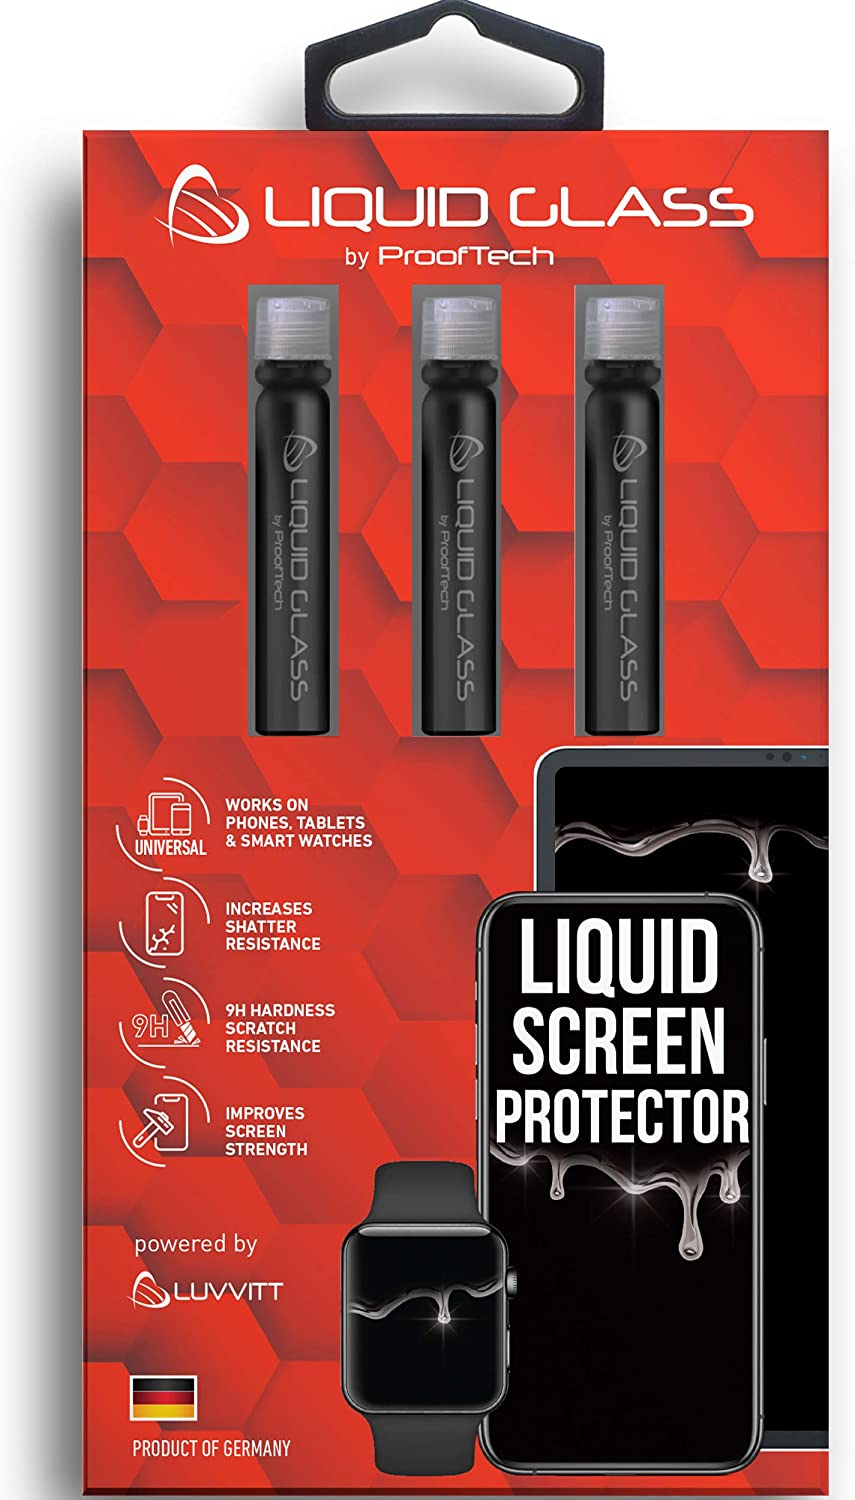 Liquid Glass Screen Protector for Up to 12 Devices   Universal for All Smartphones Tablets Smart Watches Apple Samsung LG iPhone iPad Galaxy S20 Ultra and More